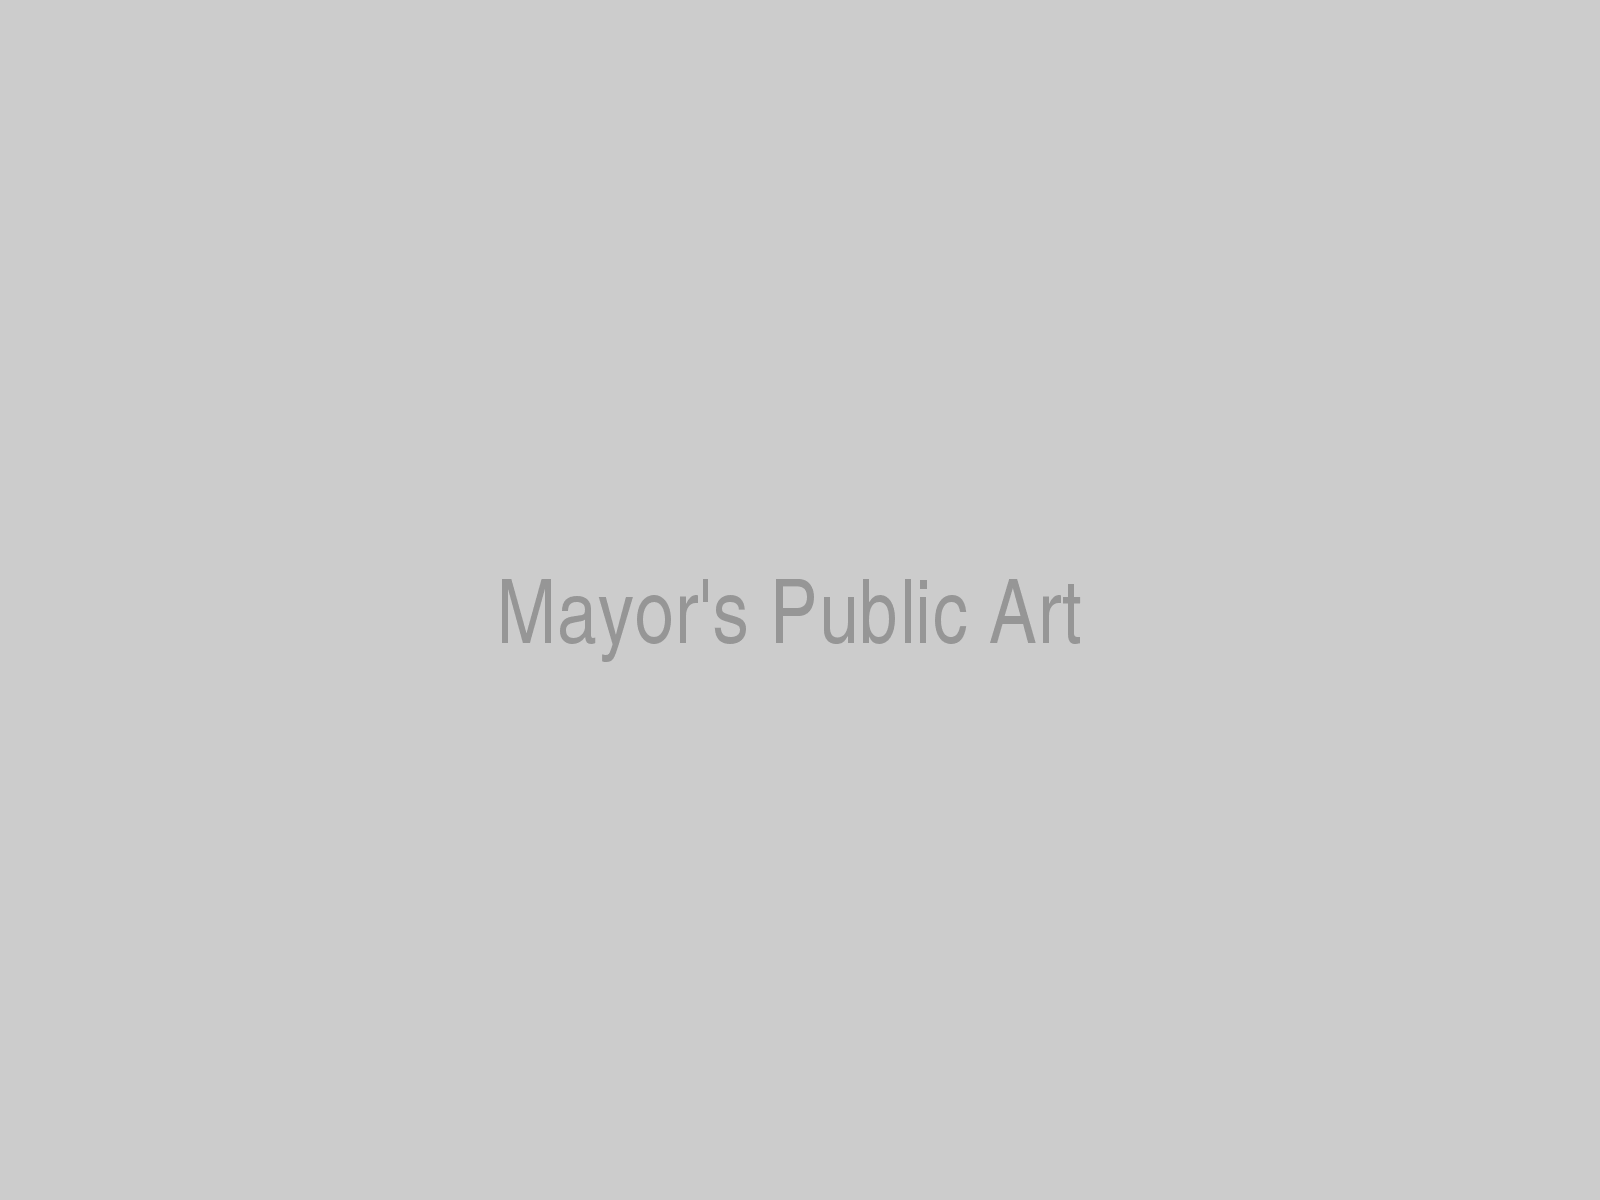 Mayor's Public Art